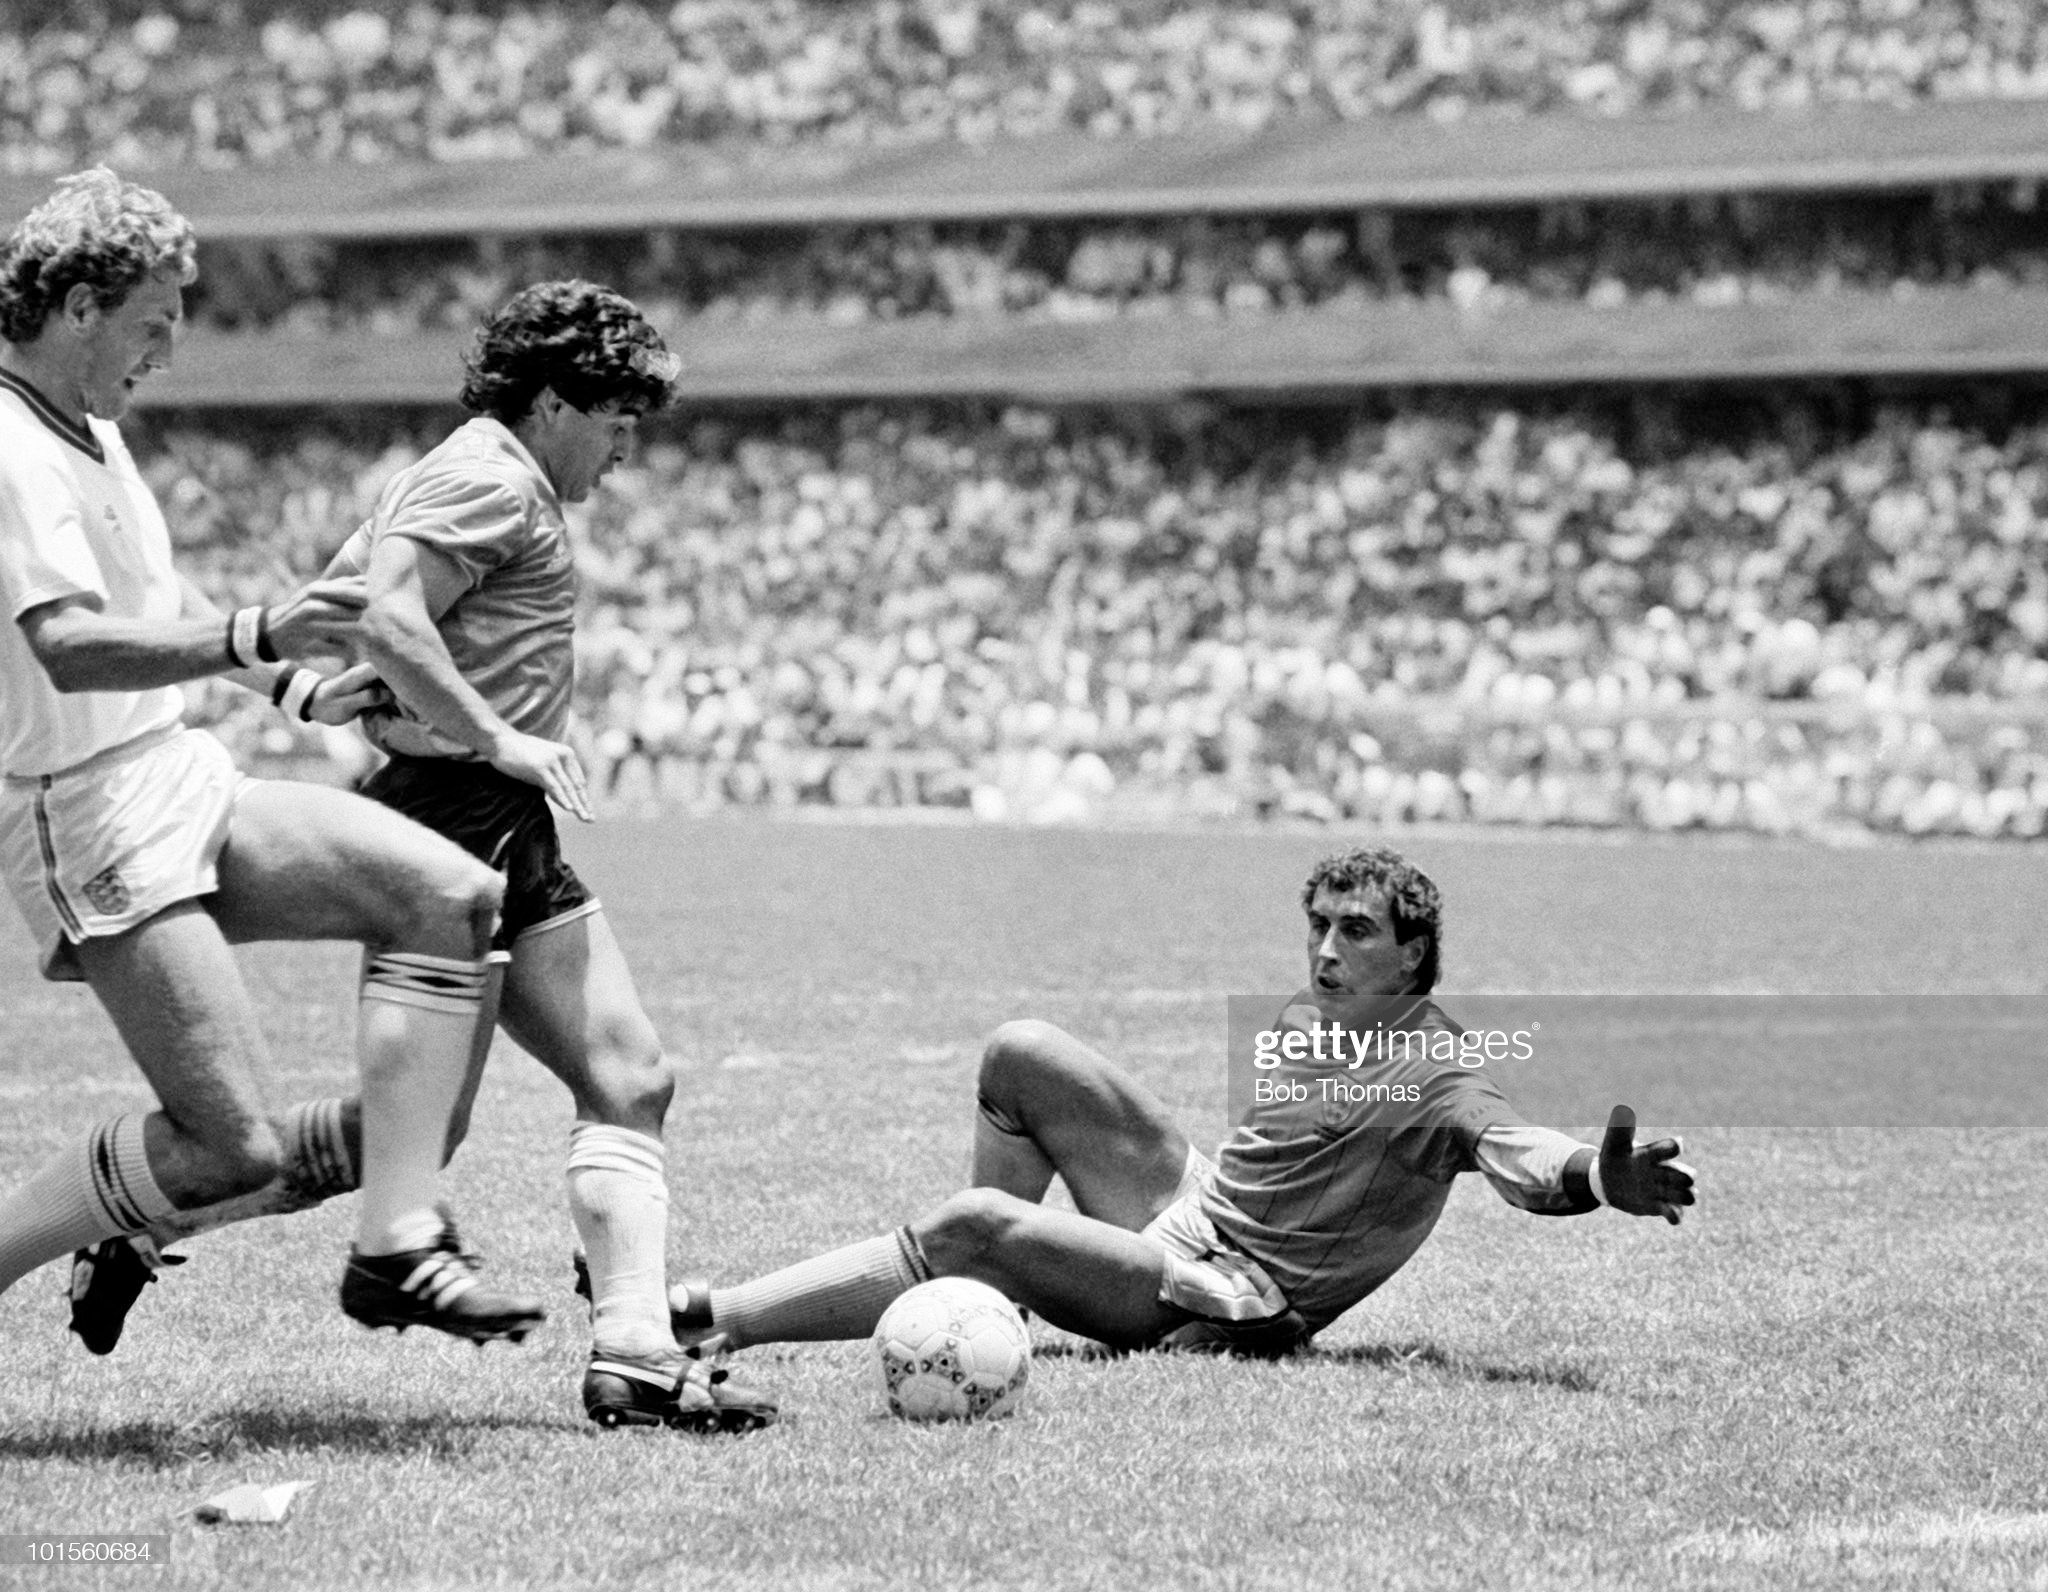 FOTOS HISTORICAS O CHULAS  DE FUTBOL - Página 17 Diego-maradona-of-argentina-takes-on-terry-butcher-and-goalkeeper-picture-id101560684?s=2048x2048